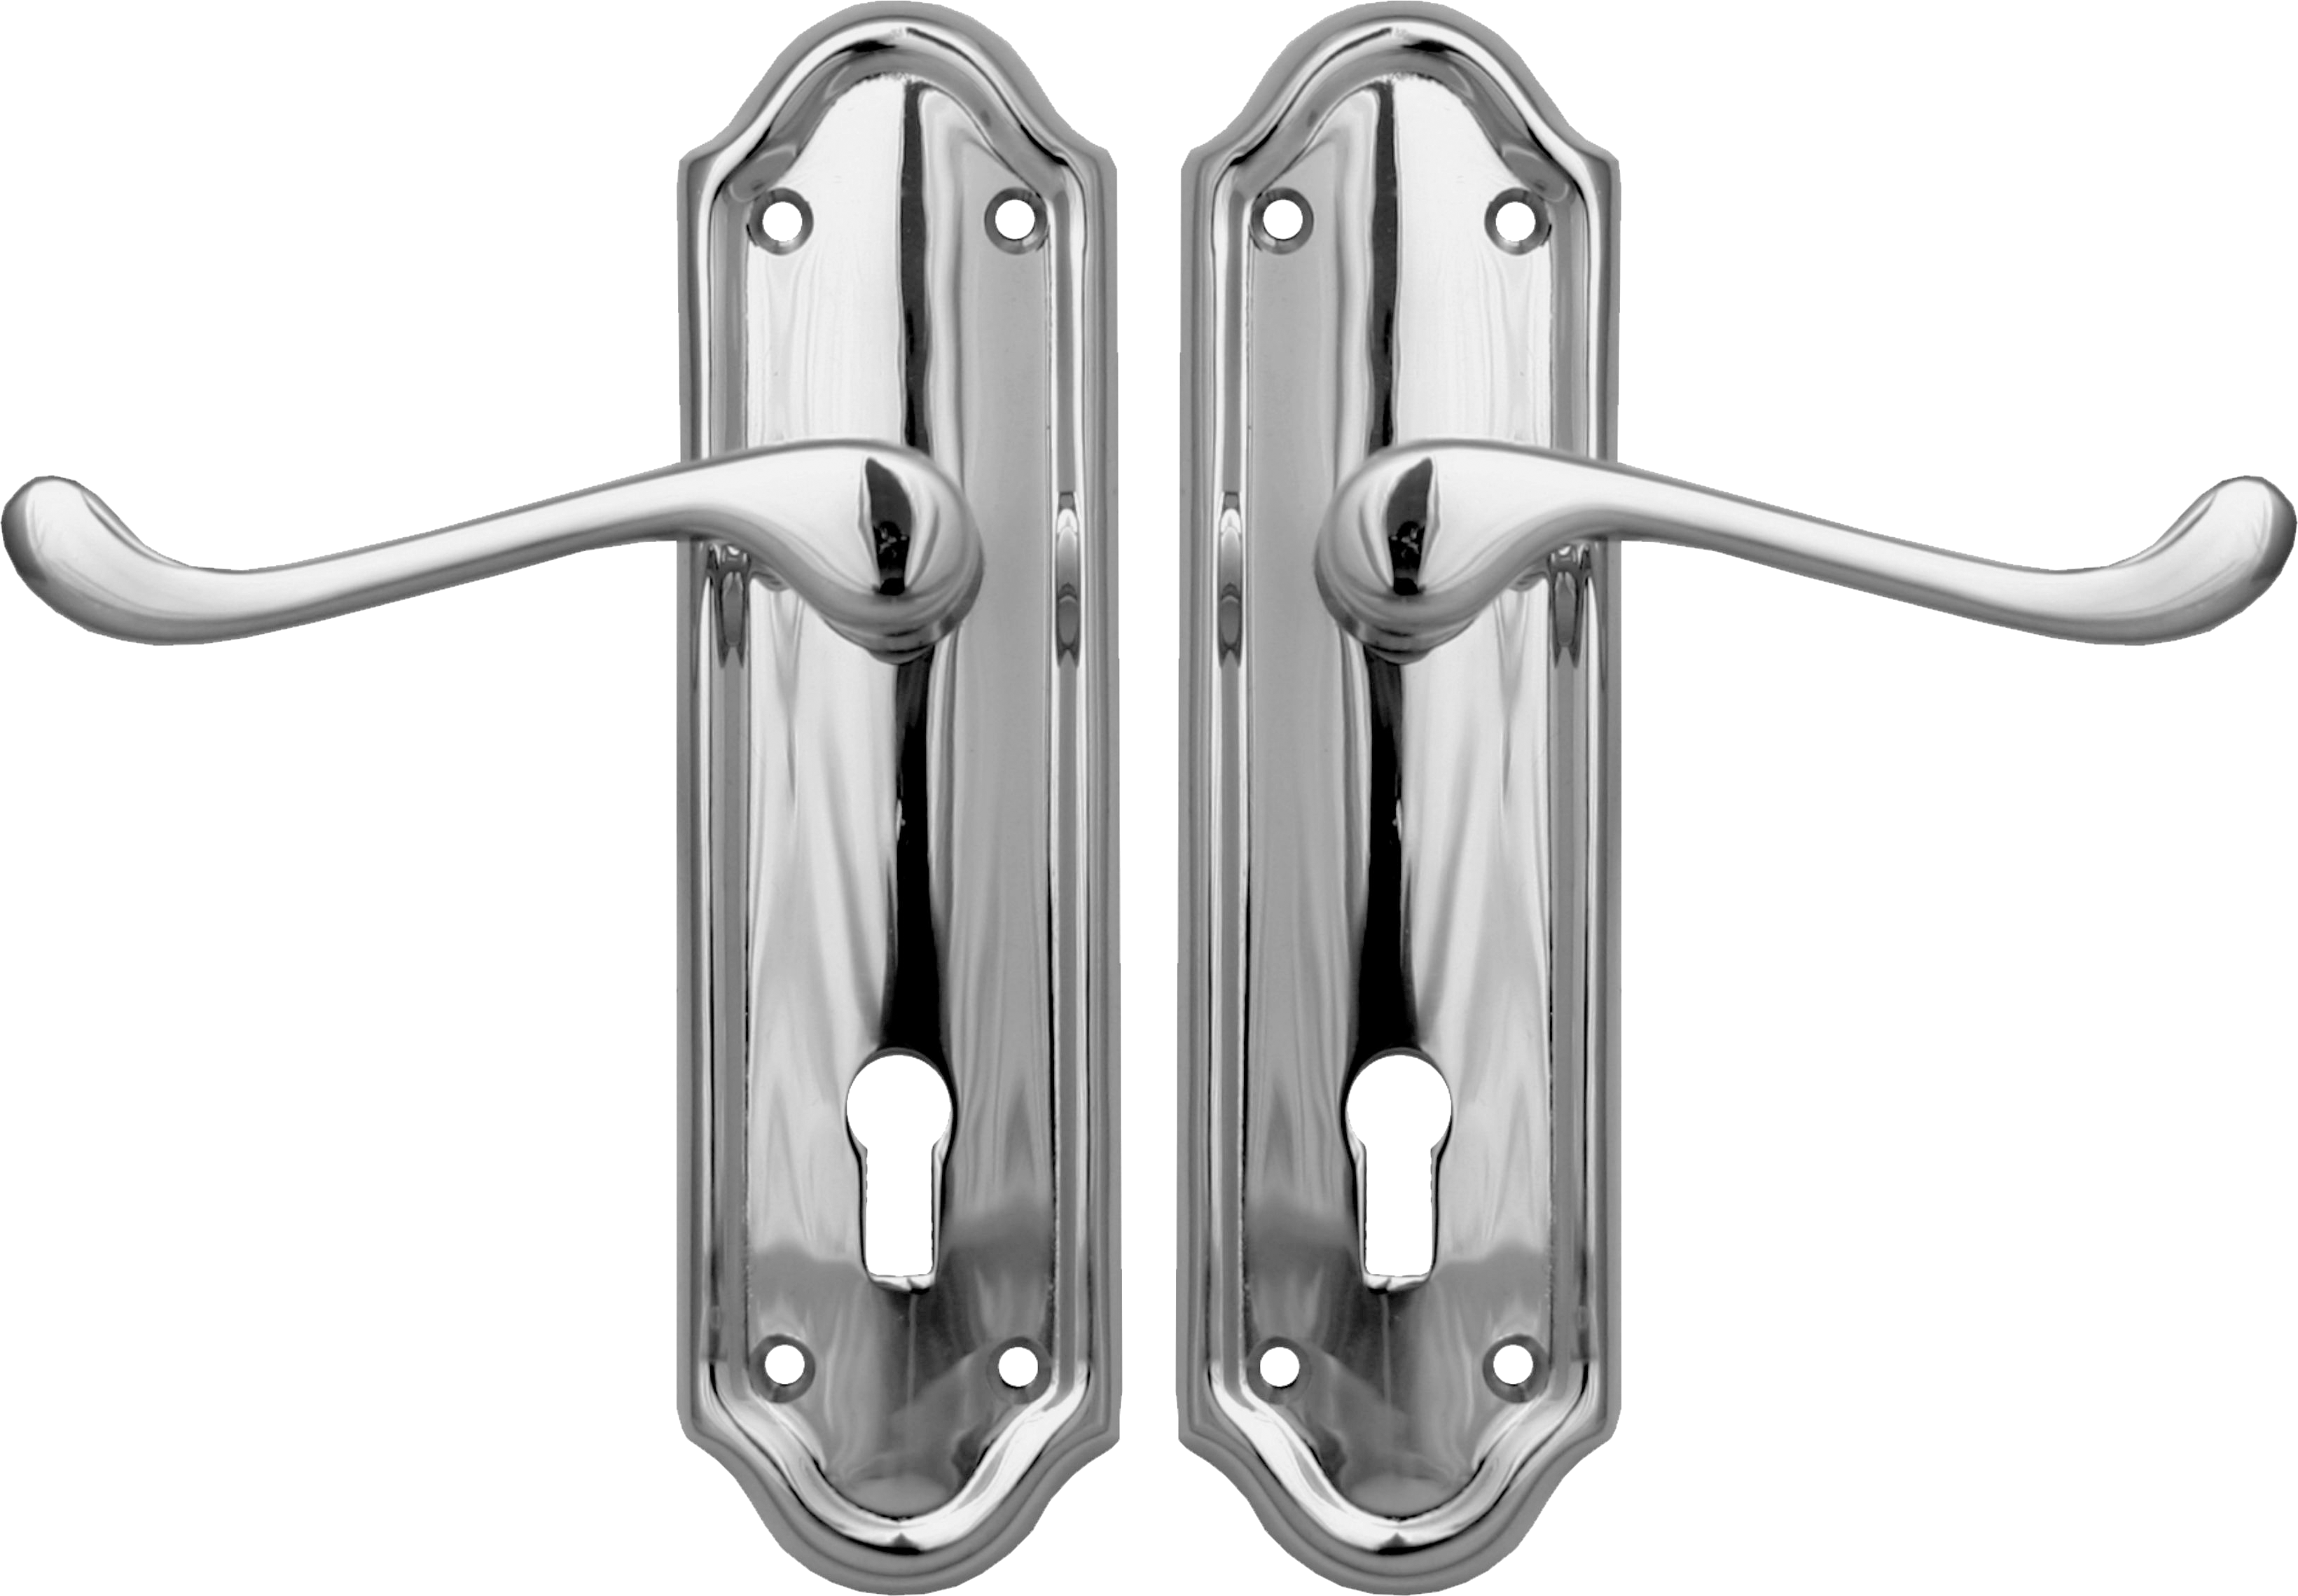 Napoli Lever Lock Set